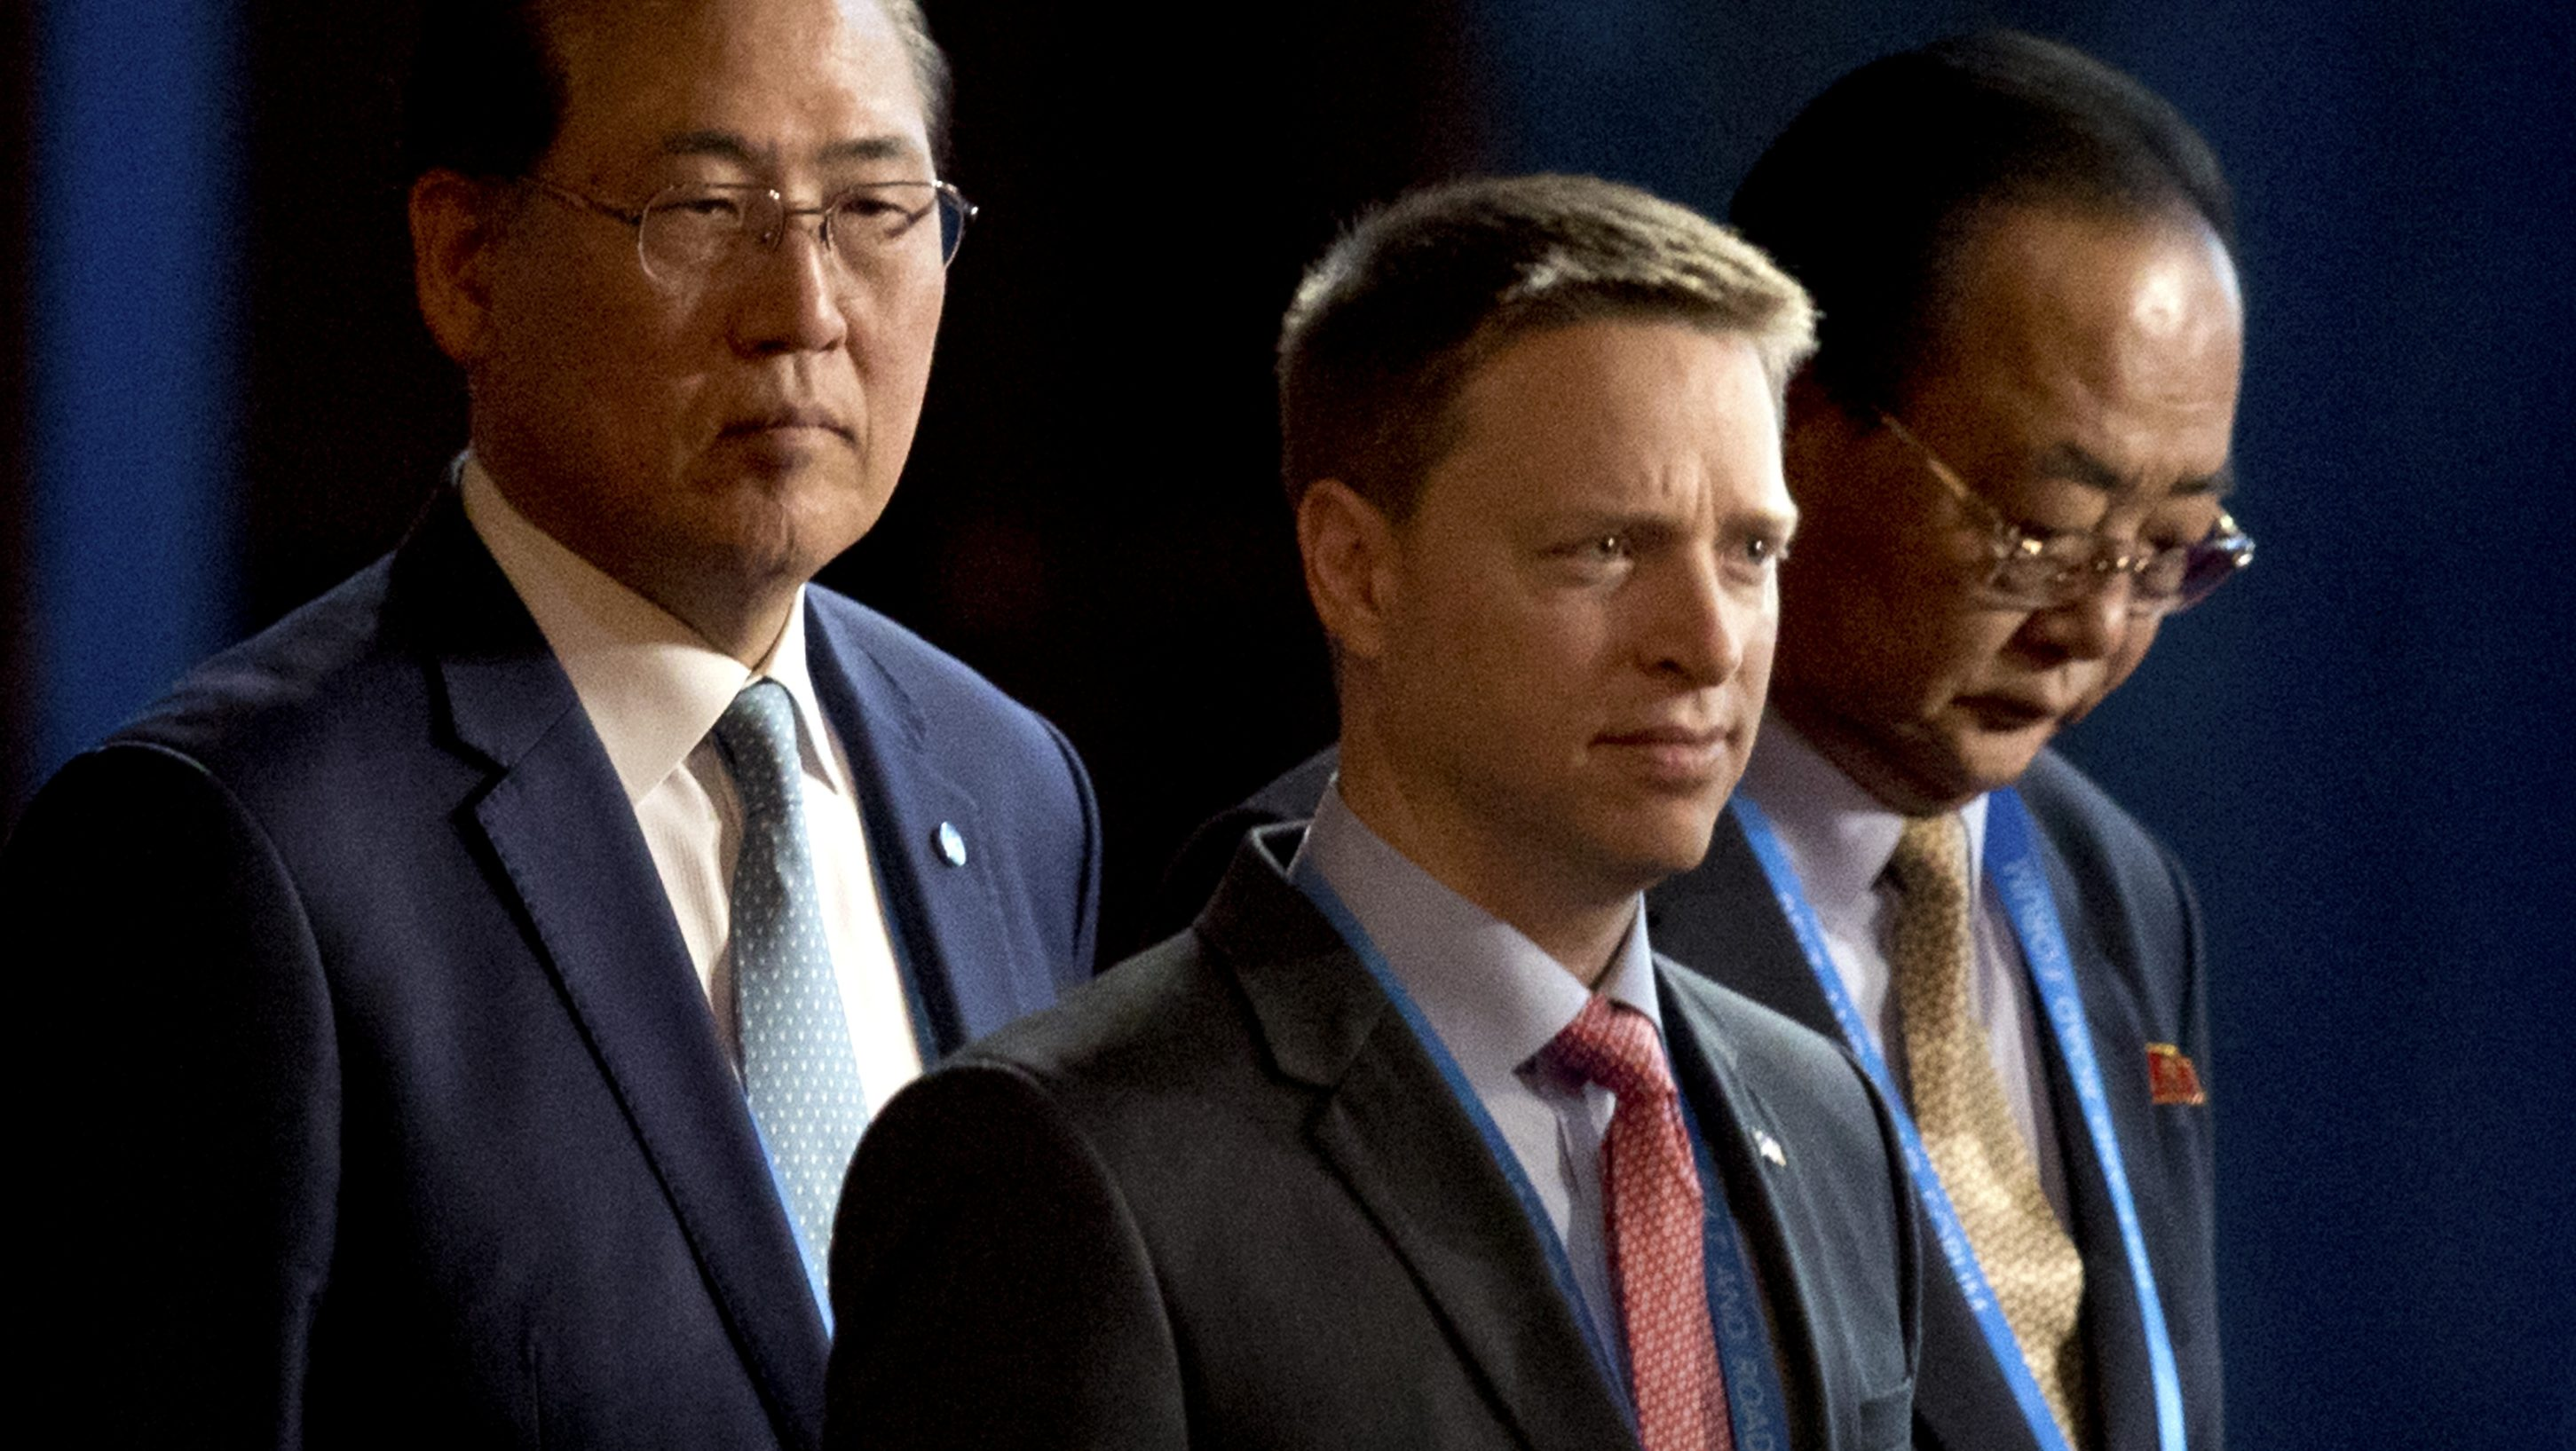 Matt Pottinger (C), Special Assistant to U.S. President Donald Trump and National Security Council (NSC) Senior Director for East Asia, and Kim Yong Jae (R), North KoreaÕs minister of external economic relations, arrive for the opening ceremony of the Belt and Road Forum at the China National Convention Center (CNCC) in Beijing, Sunday, May 14, 2017. AP Photo/Mark Schiefelbein